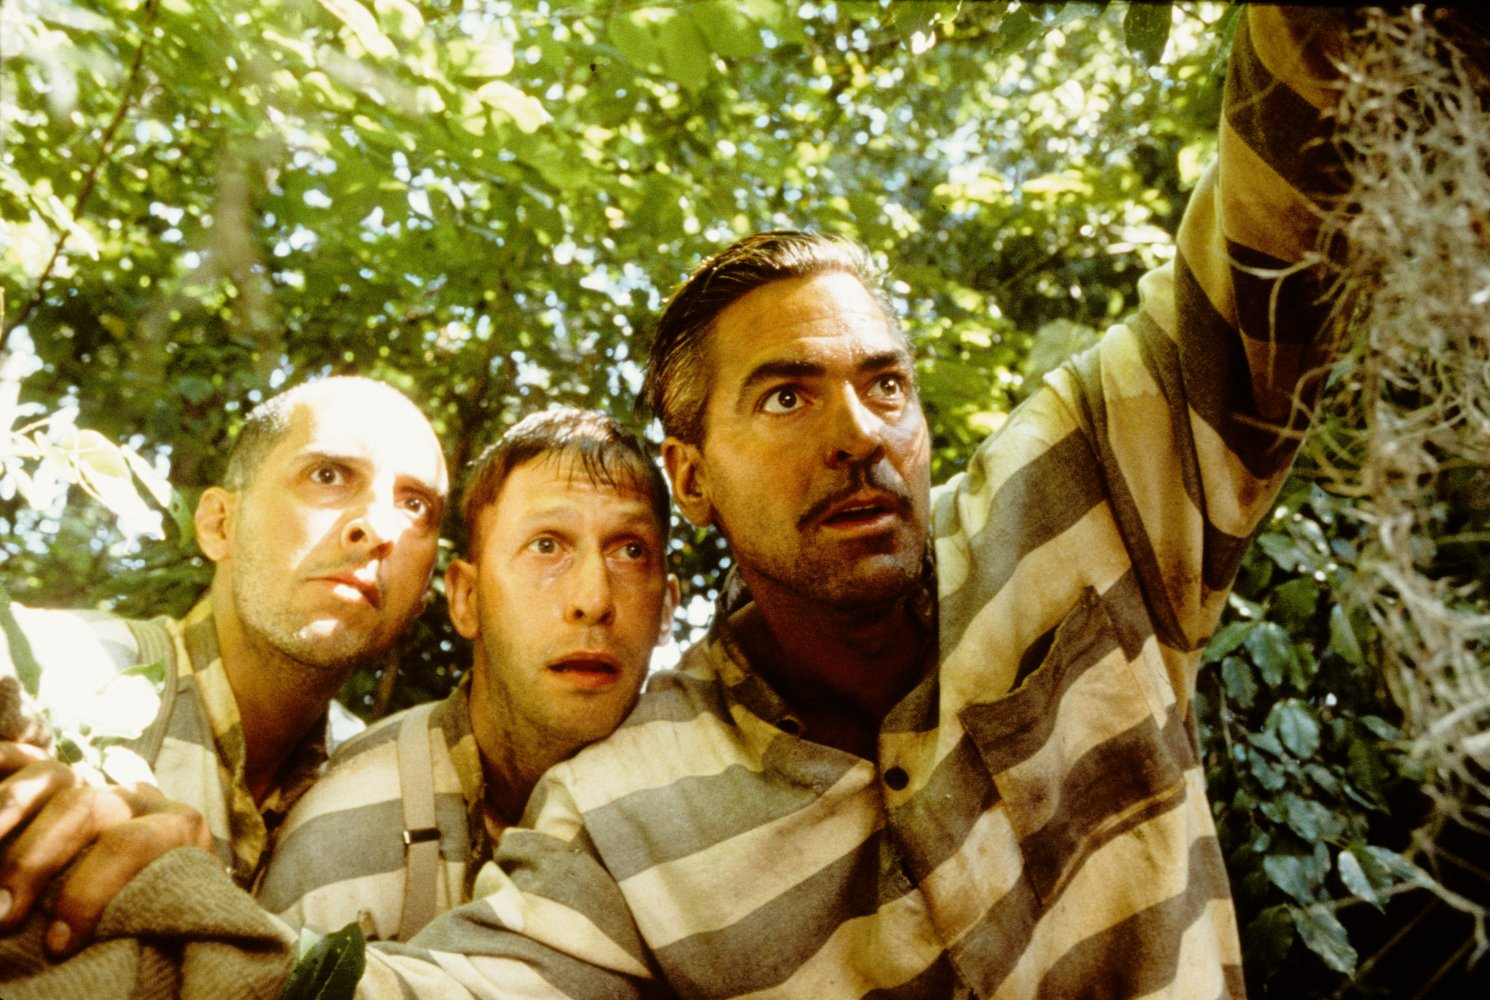 004 O Brother Where Art Thou Essay Striking And The Odyssey Comparison Vs Compared To Full